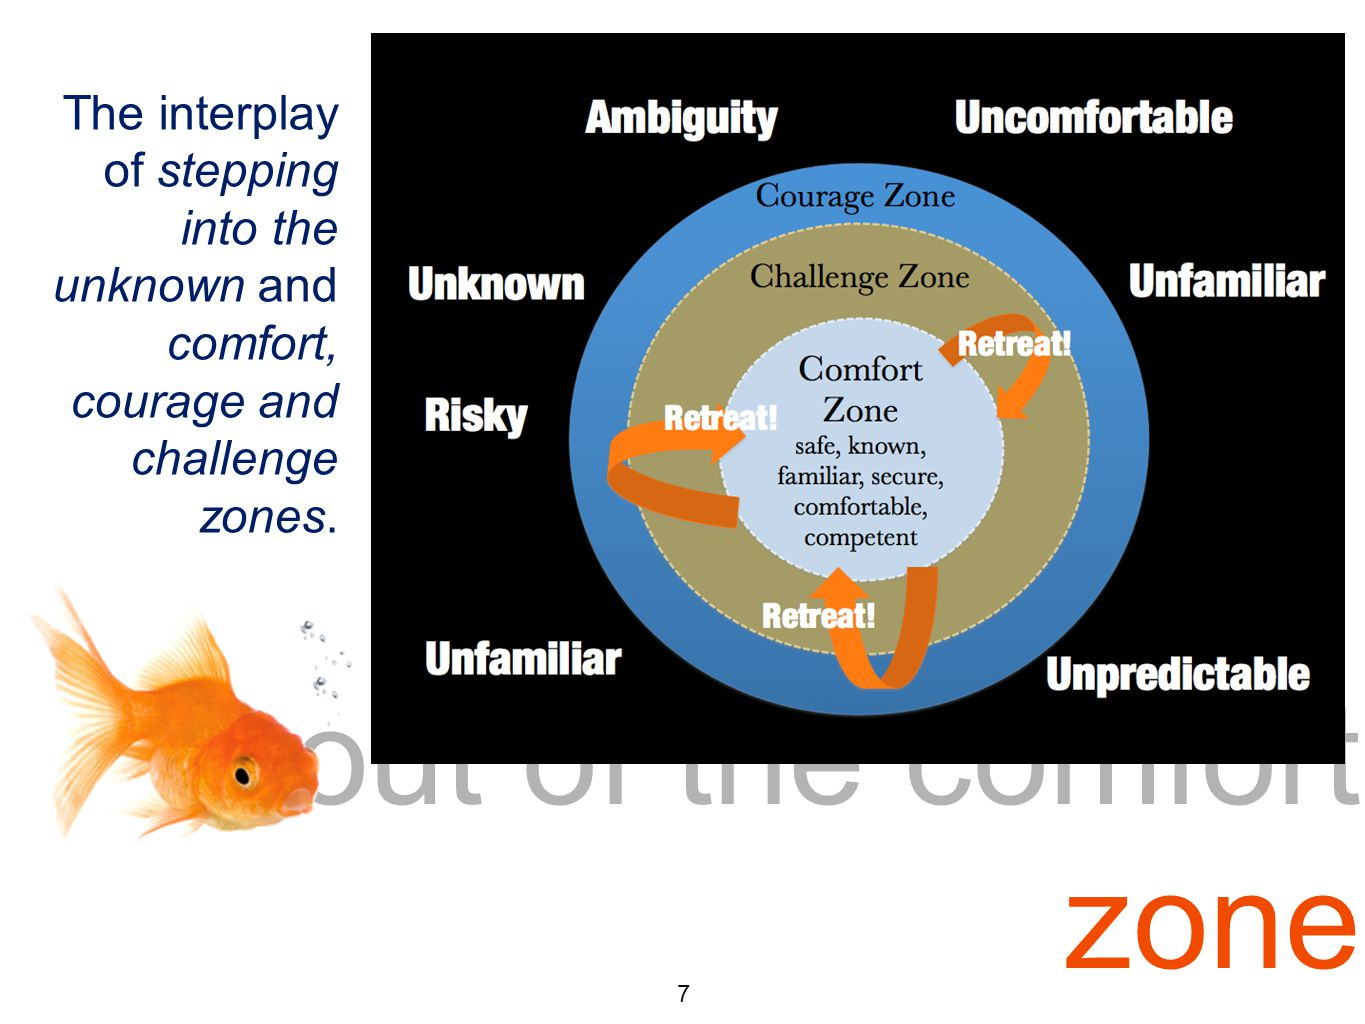 out of the comfort zone 7 The interplay of stepping into the unknown and comfort, courage and challenge zones.